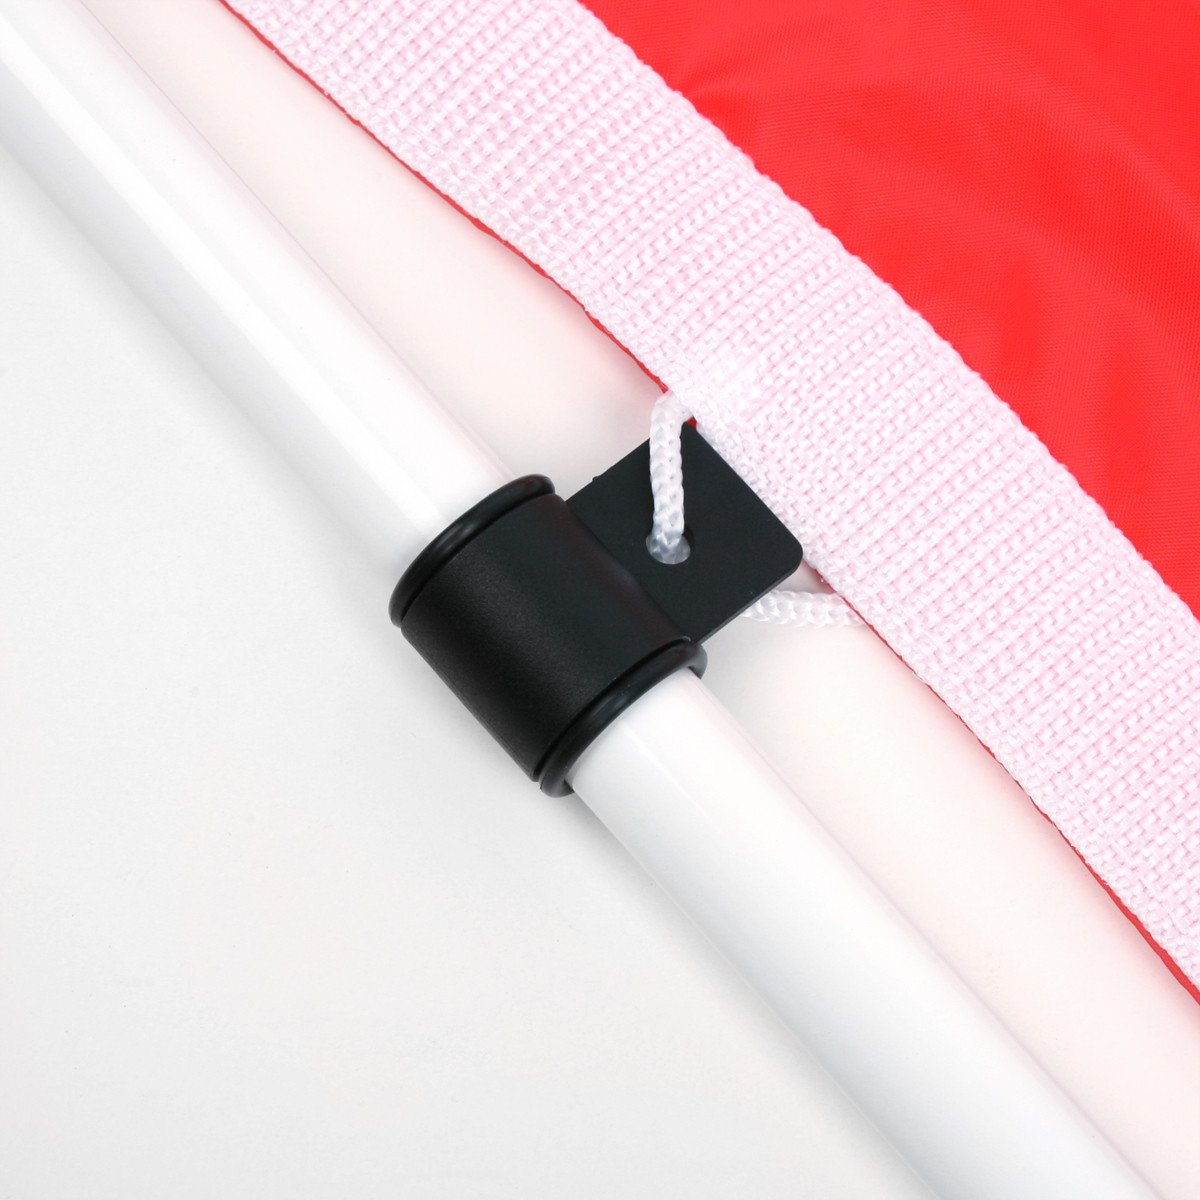 Tour Gear Portable Golf Flag with Cup by Tour Gear (Image #6)